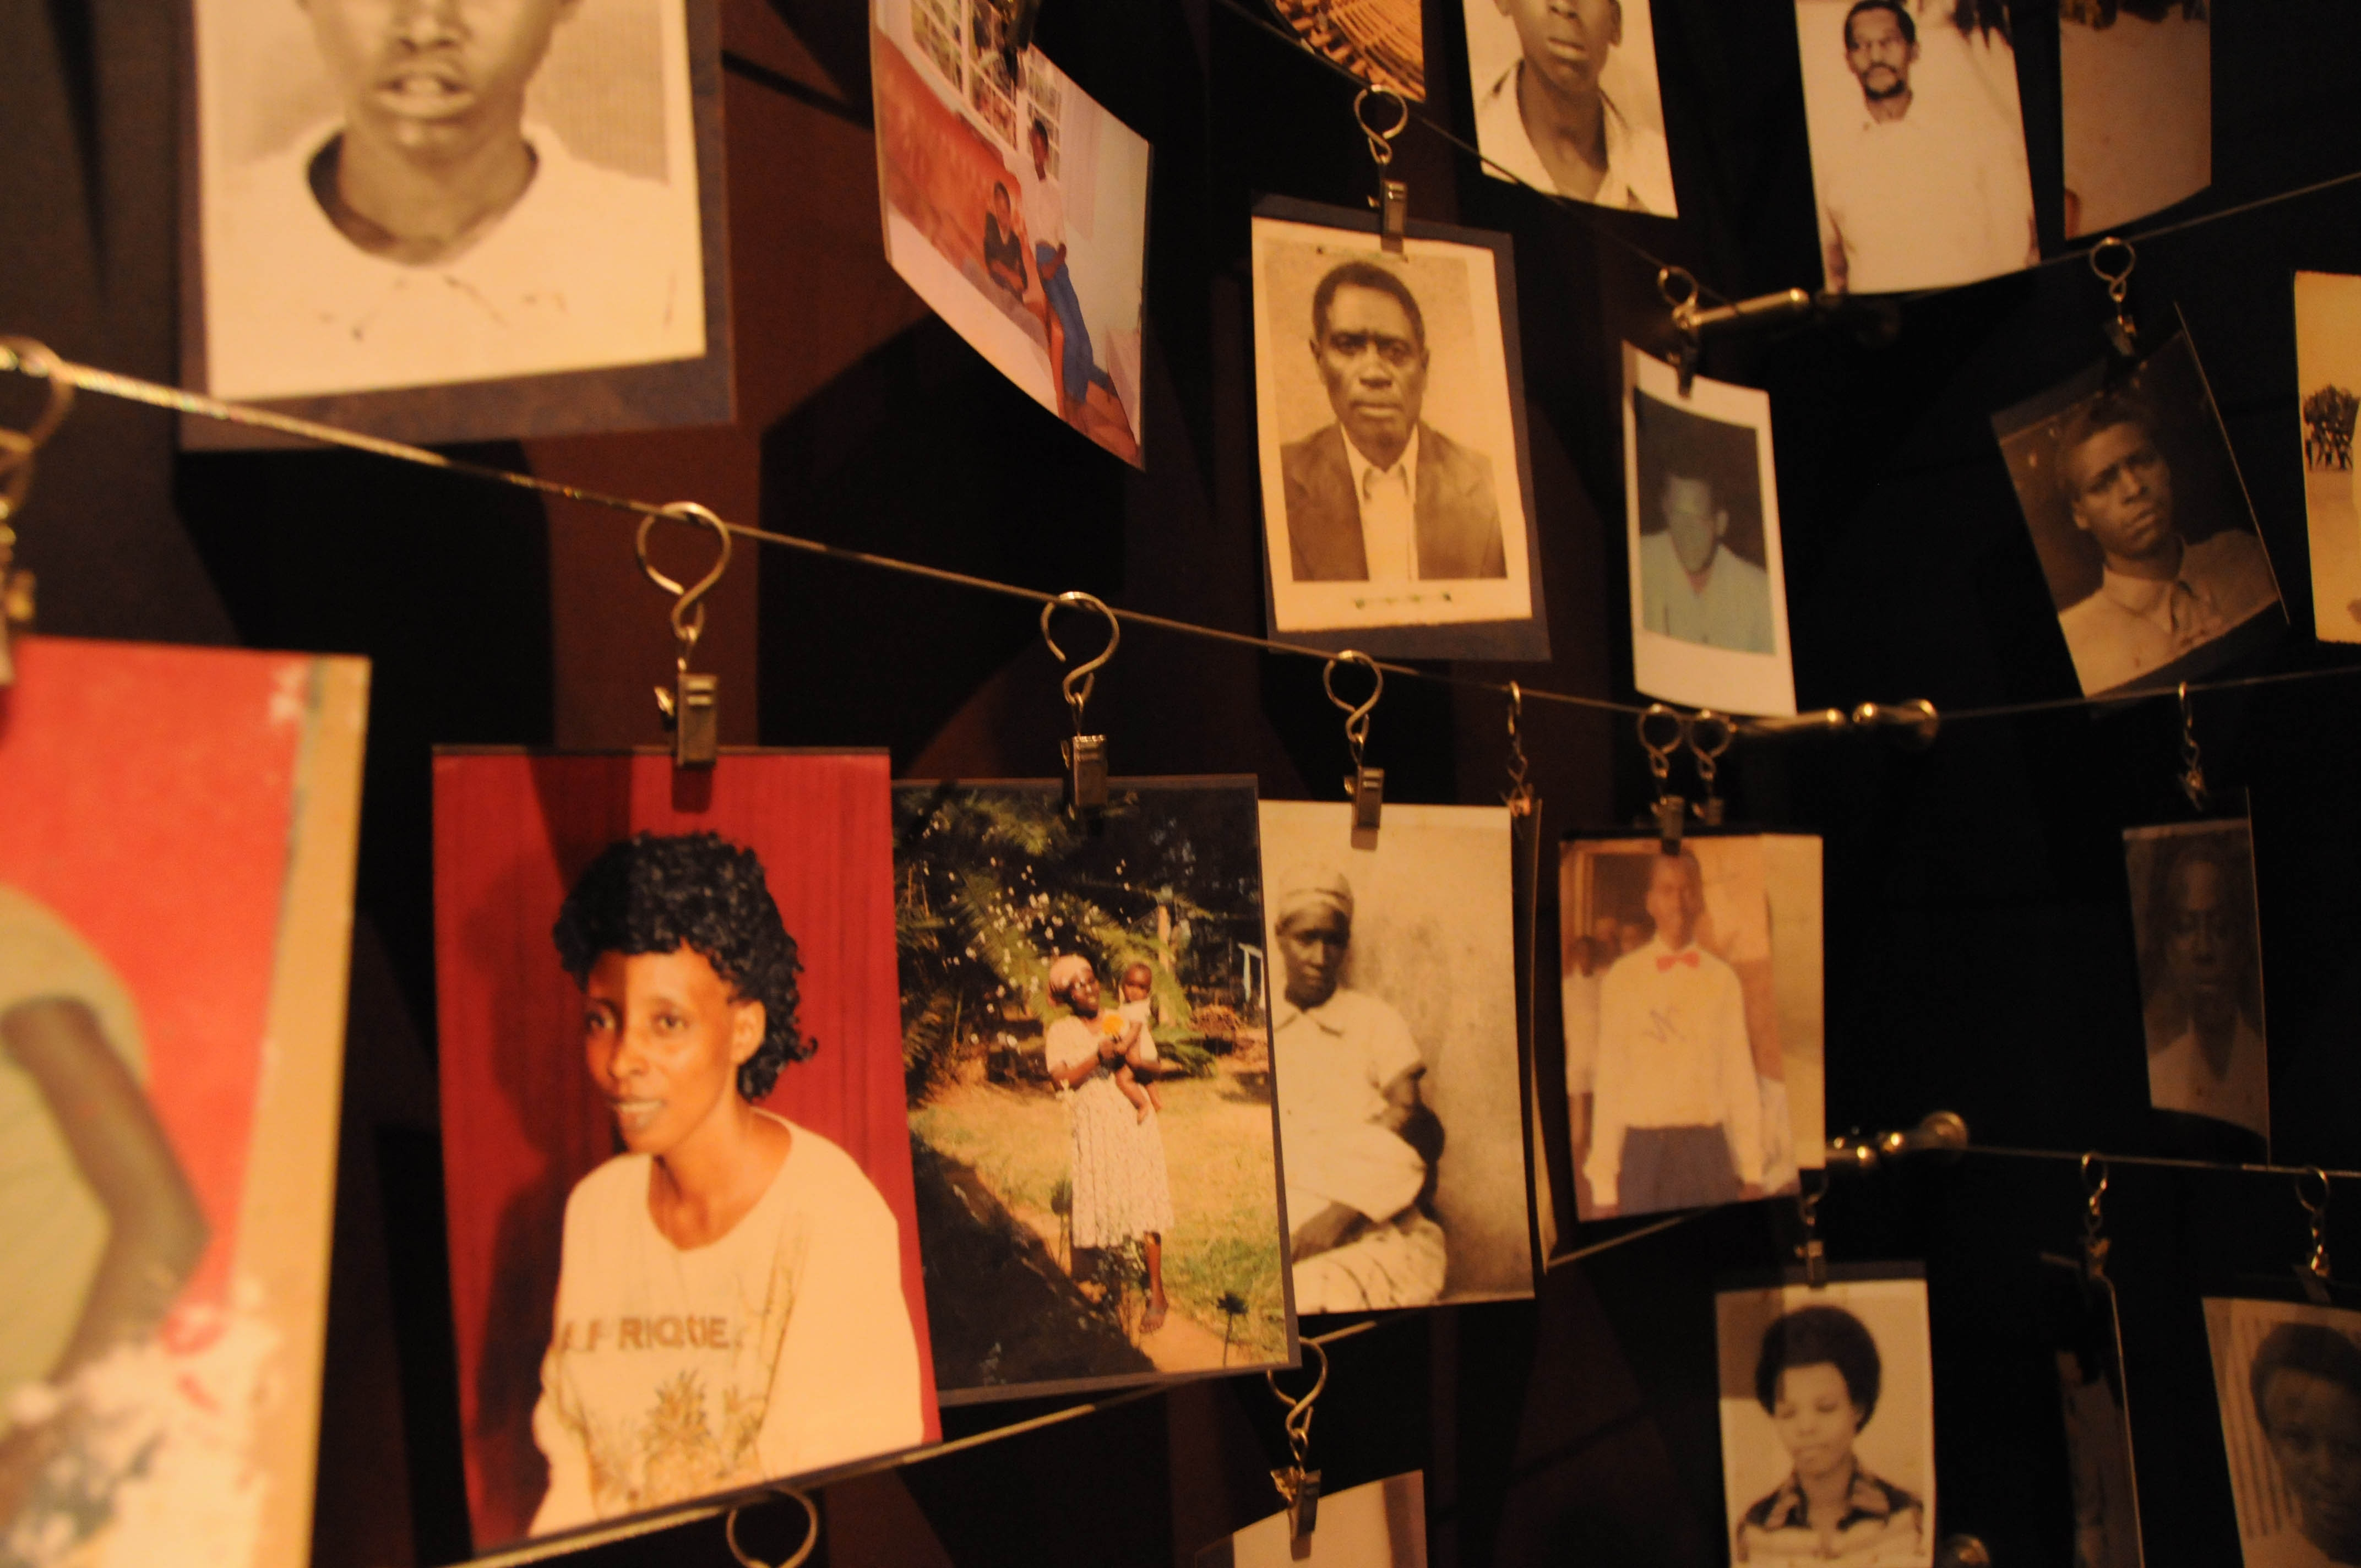 In the first genocide trial in France, a Paris court is trying a suspected perpetrator in the 1994 genocide in Rwanda. Above, photos of victims of the genocide hang in the Kigali Genocide Memorial in Kigali, Rwanda. Photo by STEVE TERRILL/AFP/Getty Images.